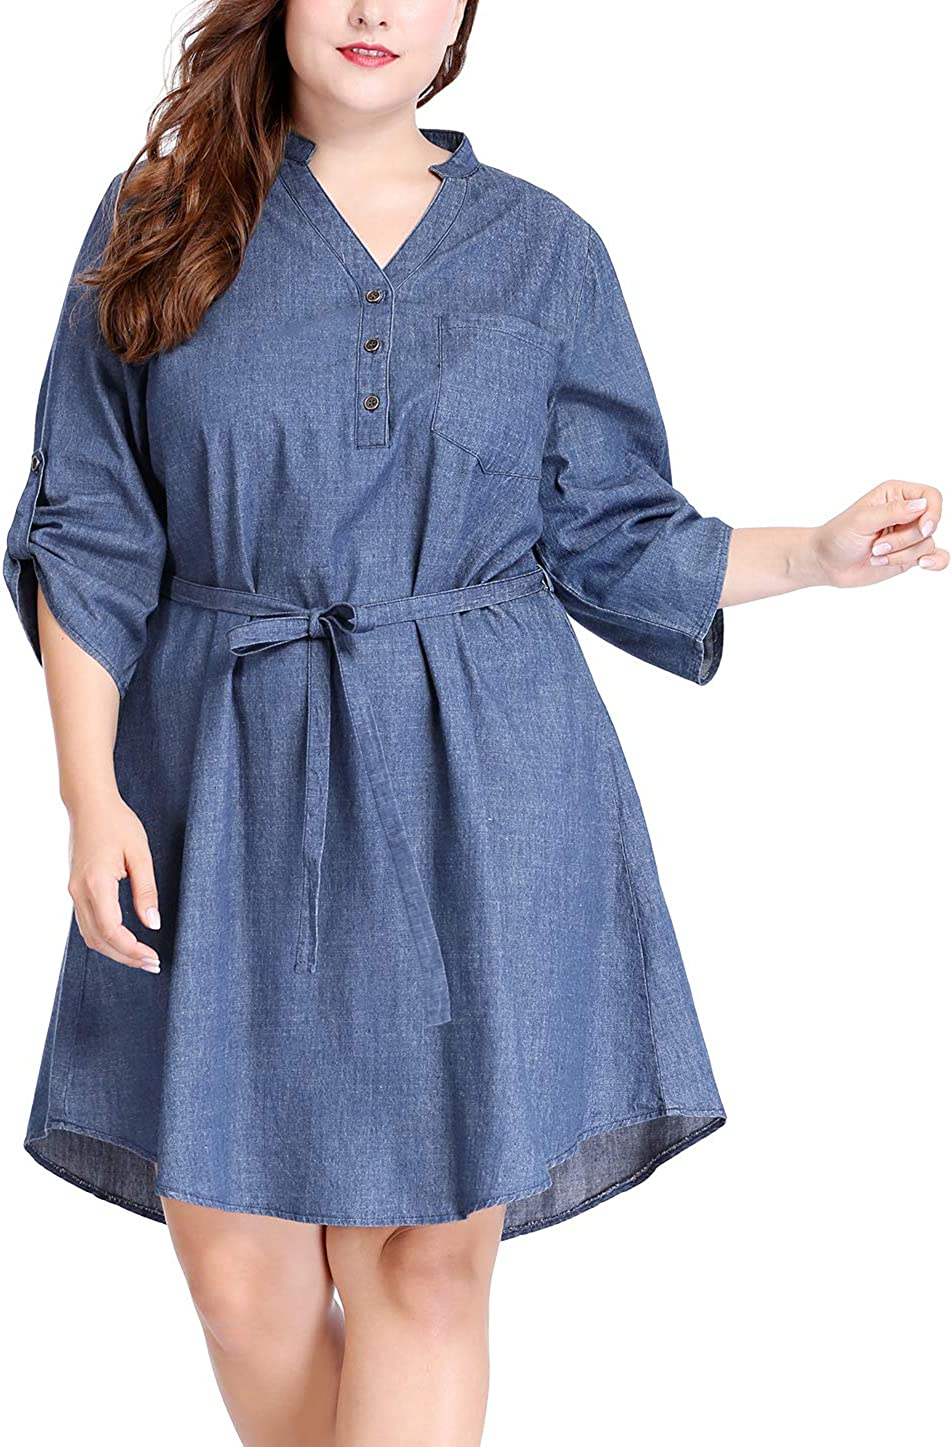 uxcell Women's Plus Size Roll Up Sleeves Above Knee Belted Denim Shirt Dress